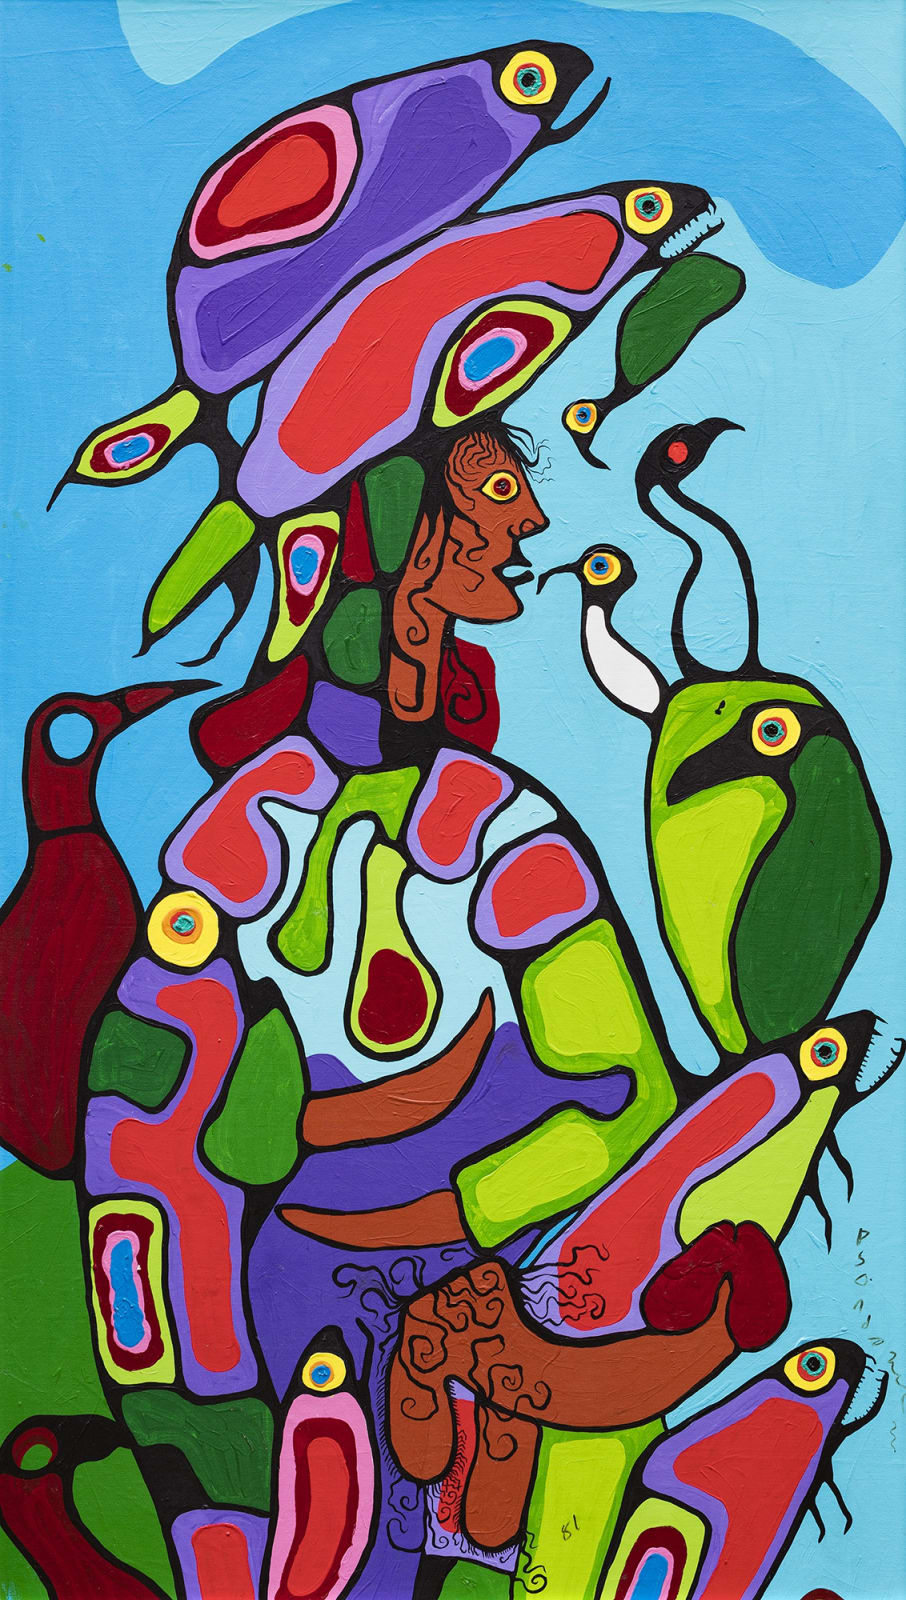 Lot 72 NORVAL MORRISSEAU, C.M. (1931-2007) ANISHINAABE Shaman (Master of the Fish), 1981 acrylic on canvas, laid down on board, 84 x 48 in (213.4 x 121.9 cm) Estimate: $30,000 — $45,000